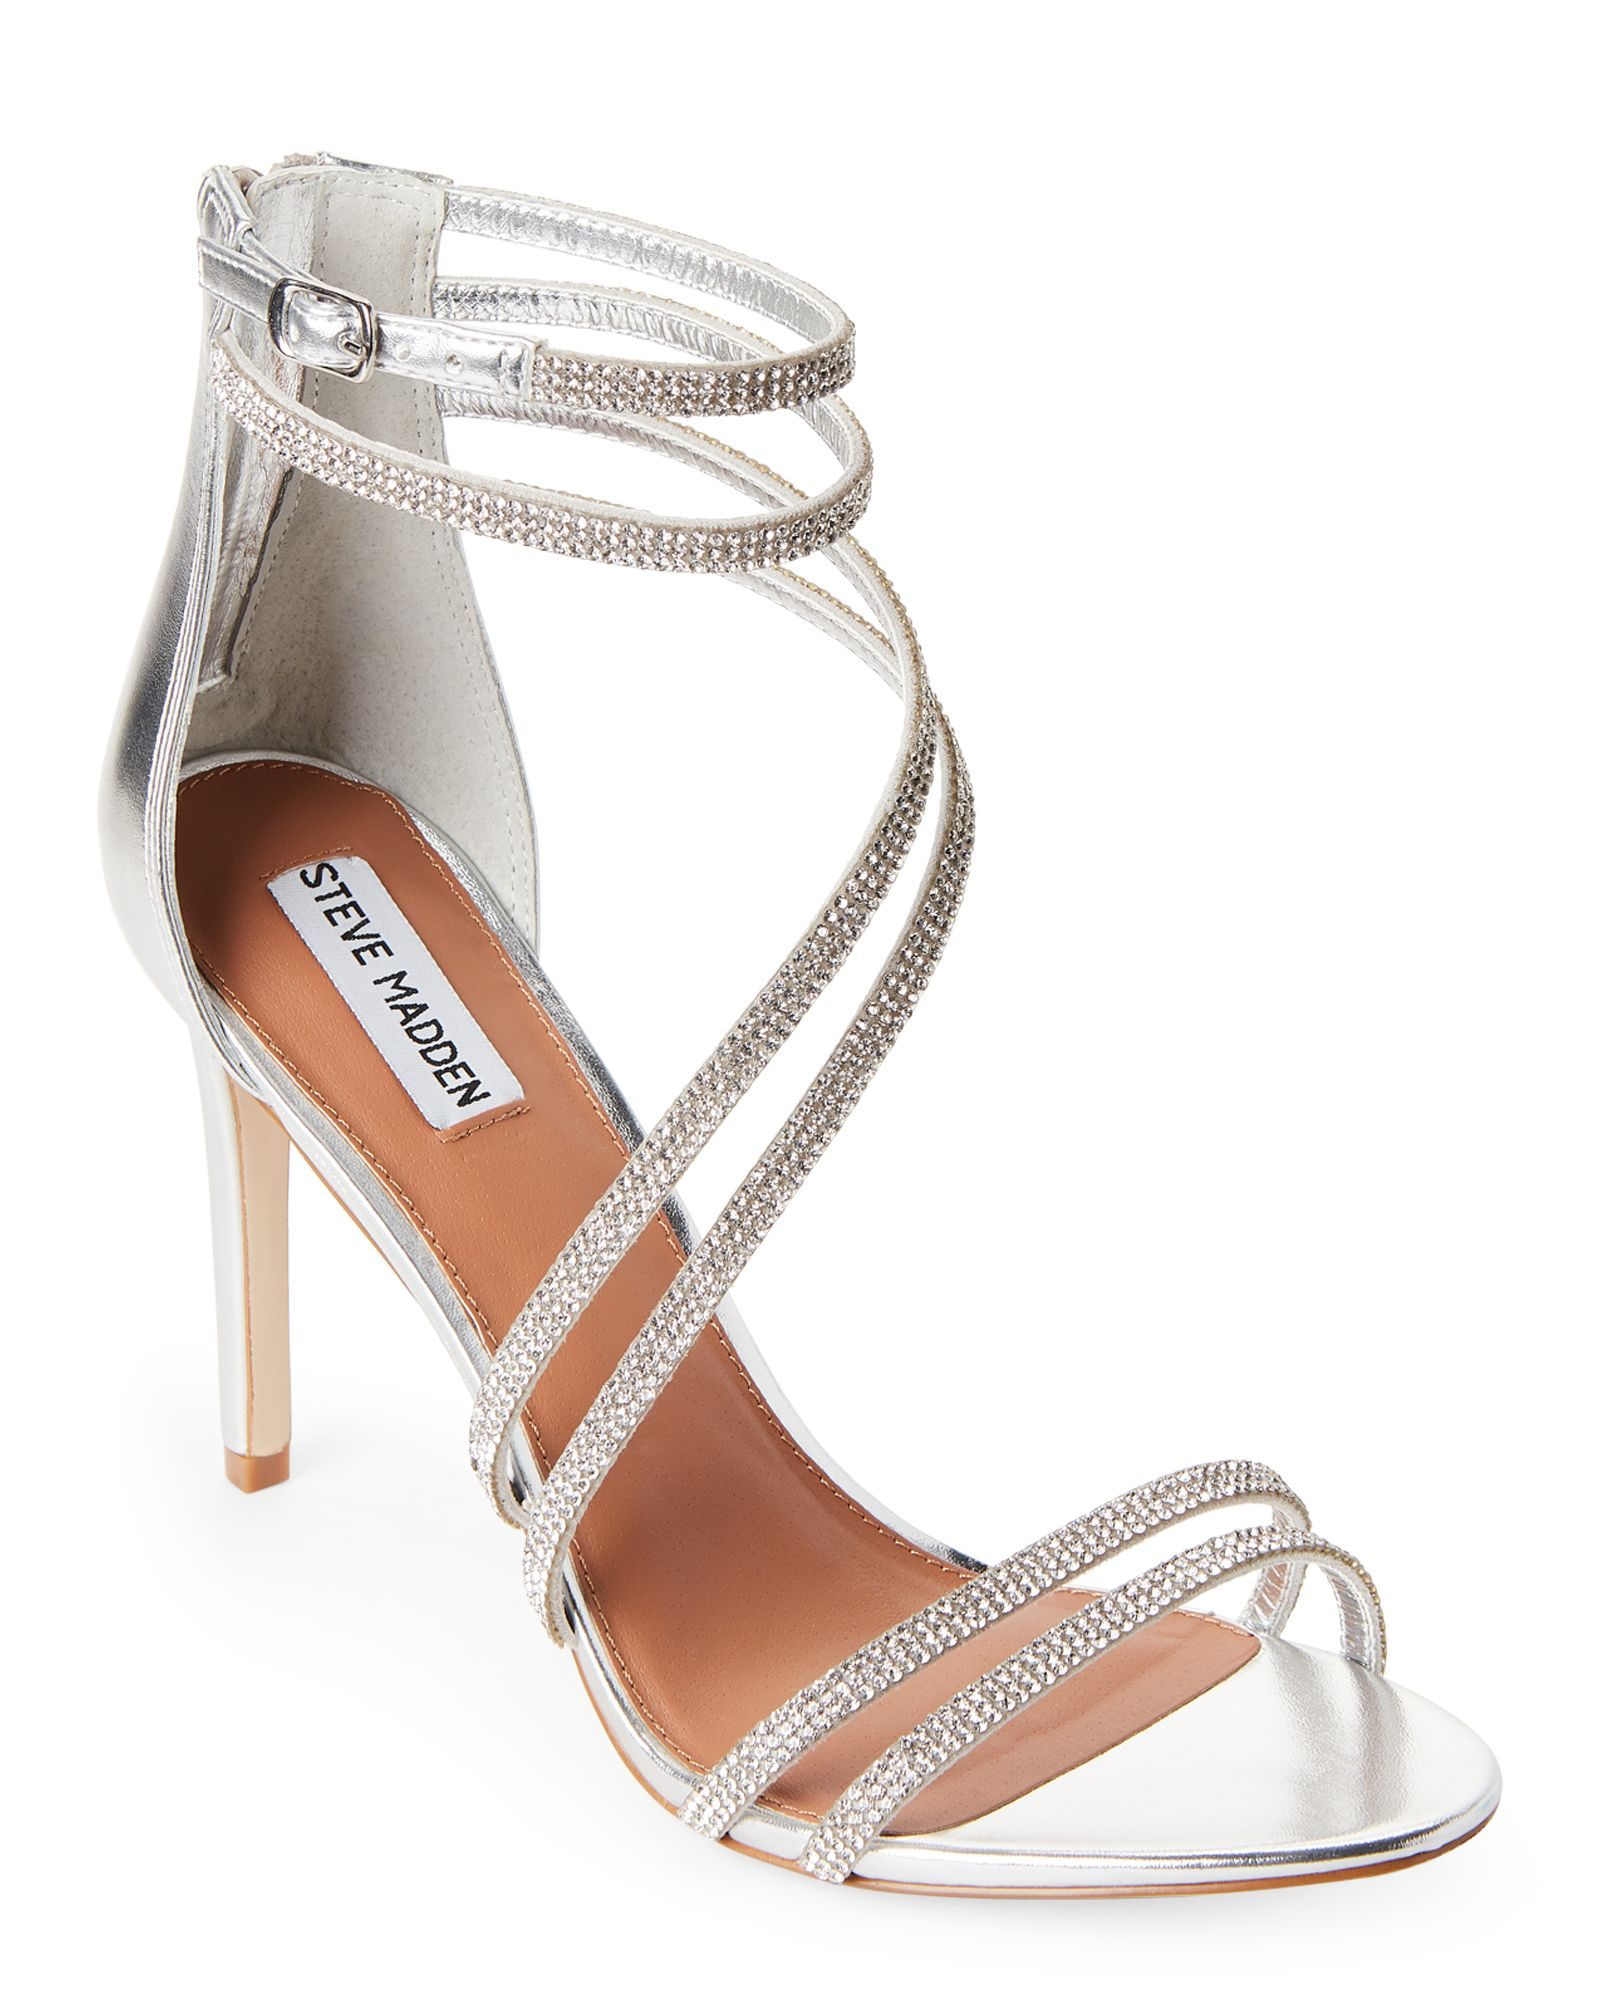 bb5c9b7bd62 Pewter Fiffi Embellished Strappy Sandals | *Apparel & Accessories ...